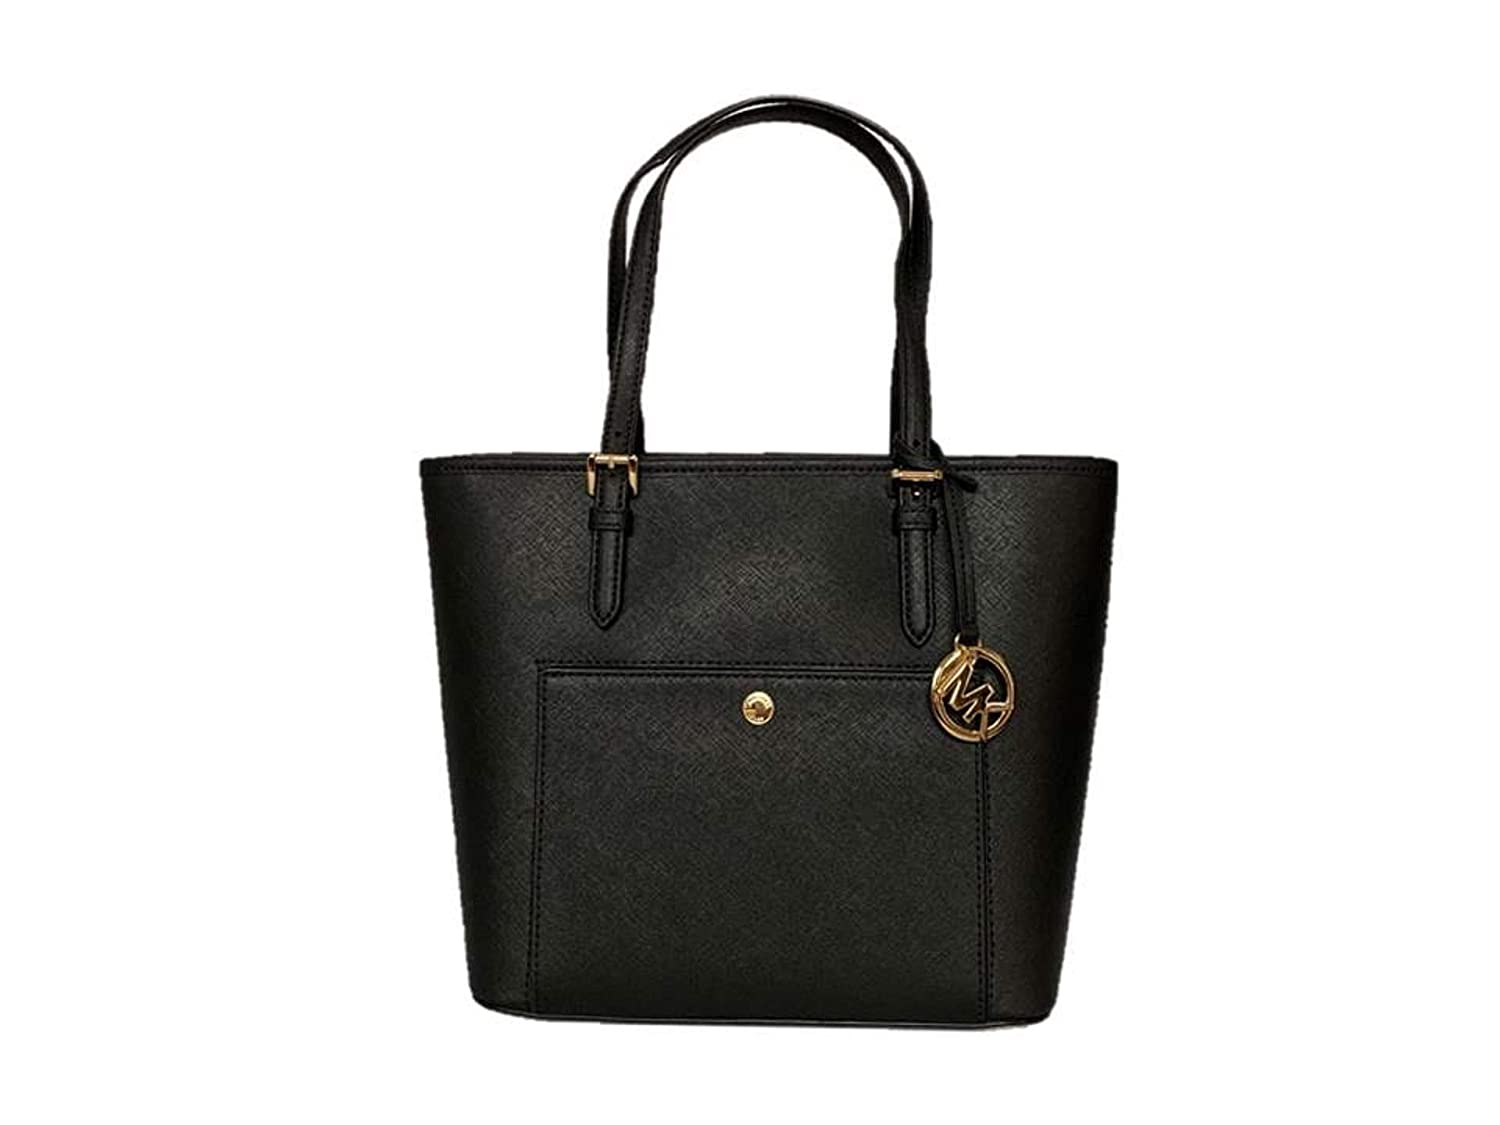 69b3f5eedfdd Michael Kors Jet Set Item Medium Top Zip Saffiano Leather Snap Pocket Tote  - Black: Handbags: Amazon.com